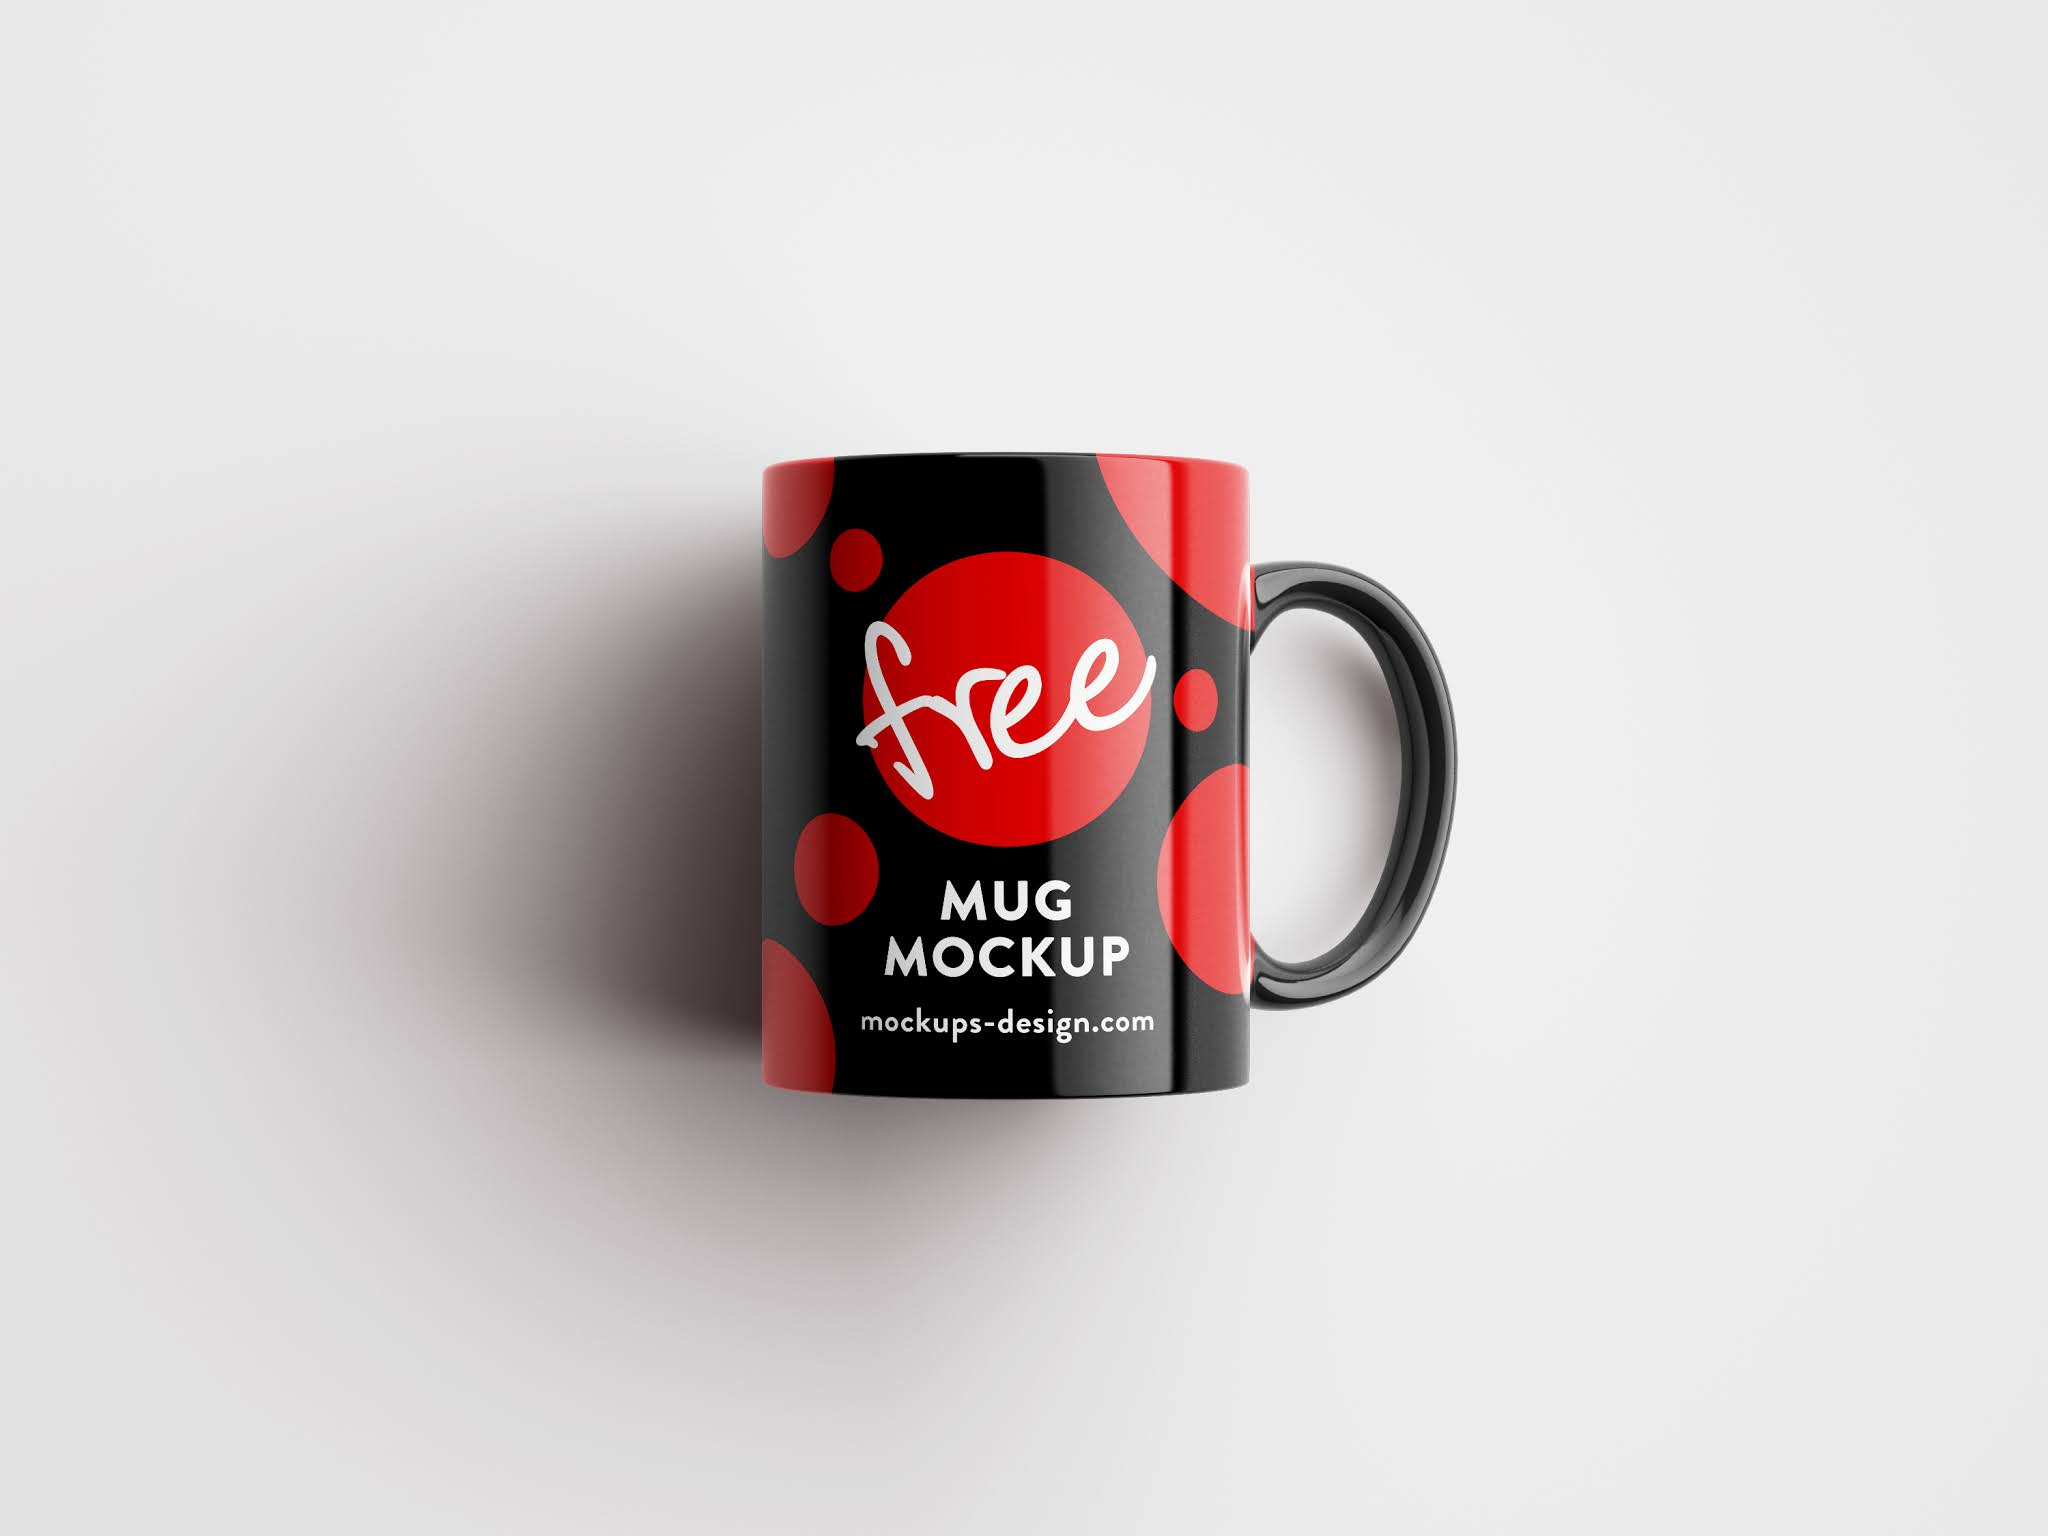 Download Mockup Mag View 4 different shapes to professionally display the designs of mugs